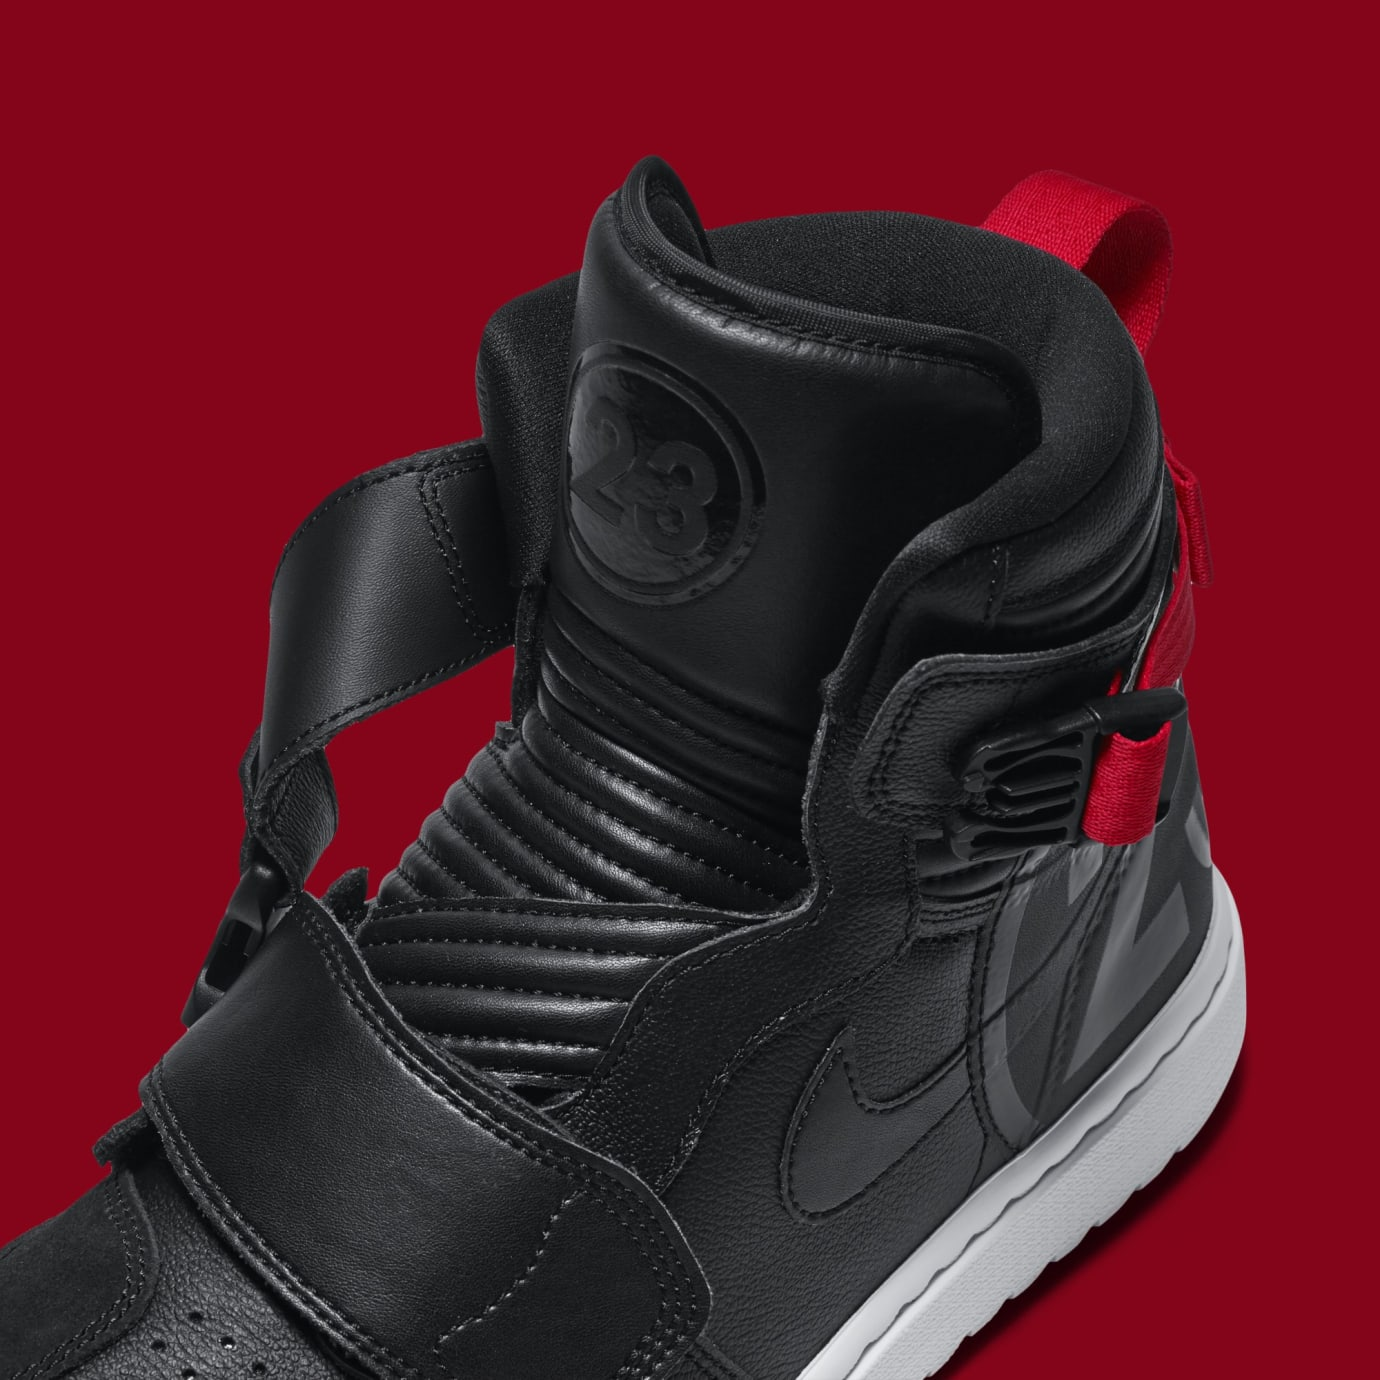 Air Jordan 1 Motorsports 'Black/Red' AT3146-001 (Detail)